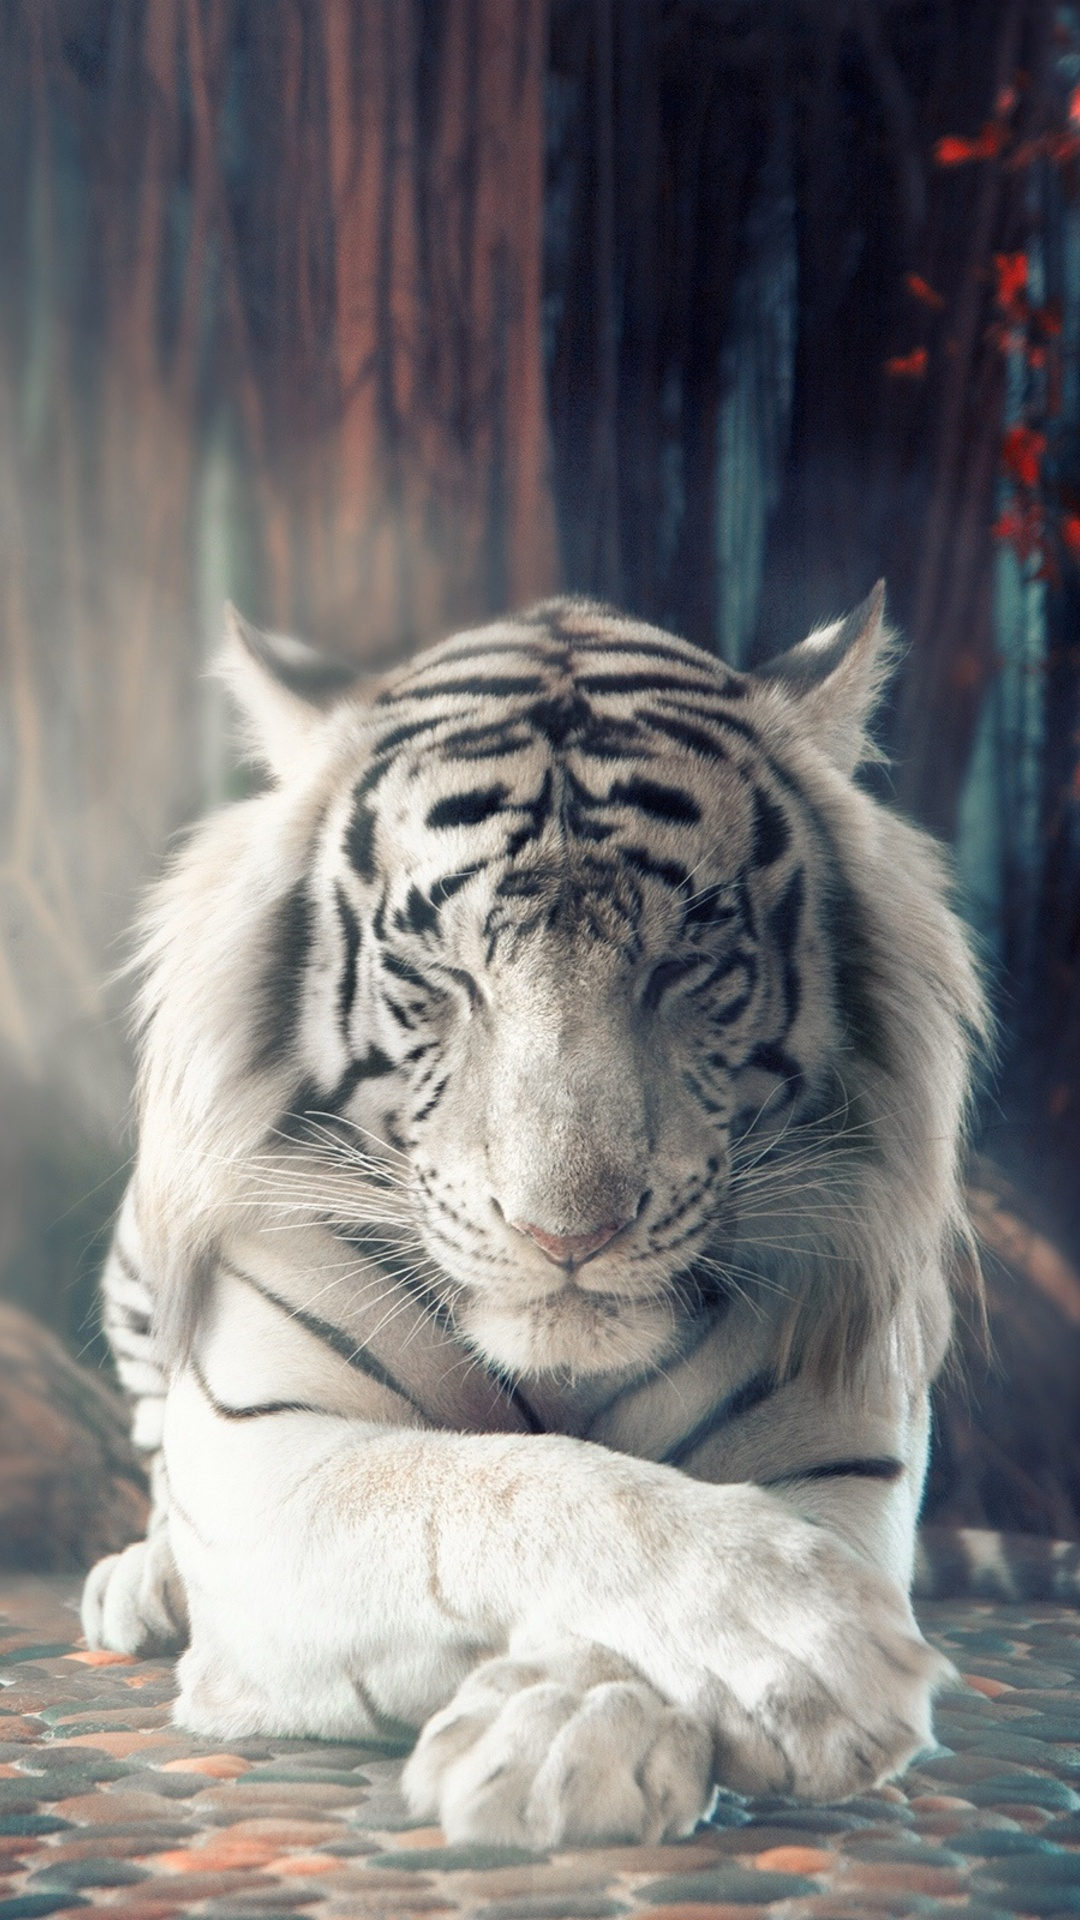 1080x1920 White Tiger Dreamy Iphone 7 6s 6 Plus Pixel Xl